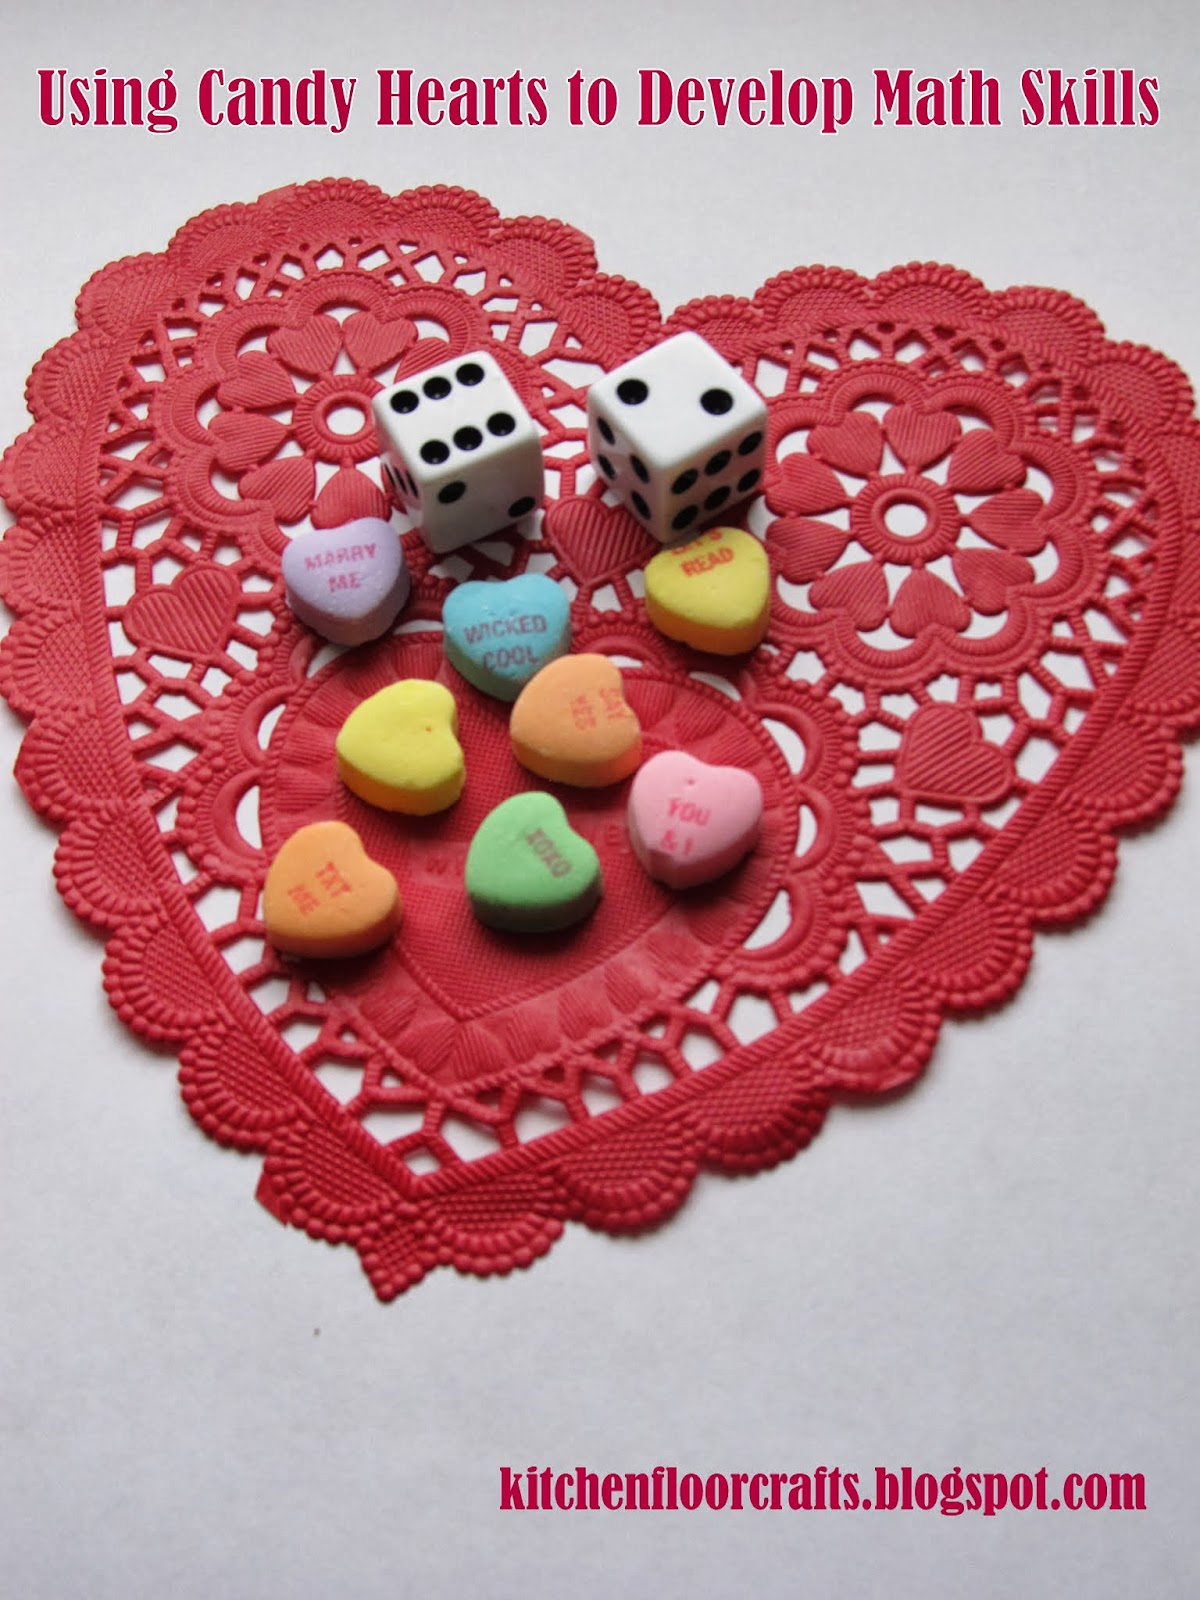 Kitchen Floor Crafts Using Candy Hearts For Early Math Skills With 3 Free Printables